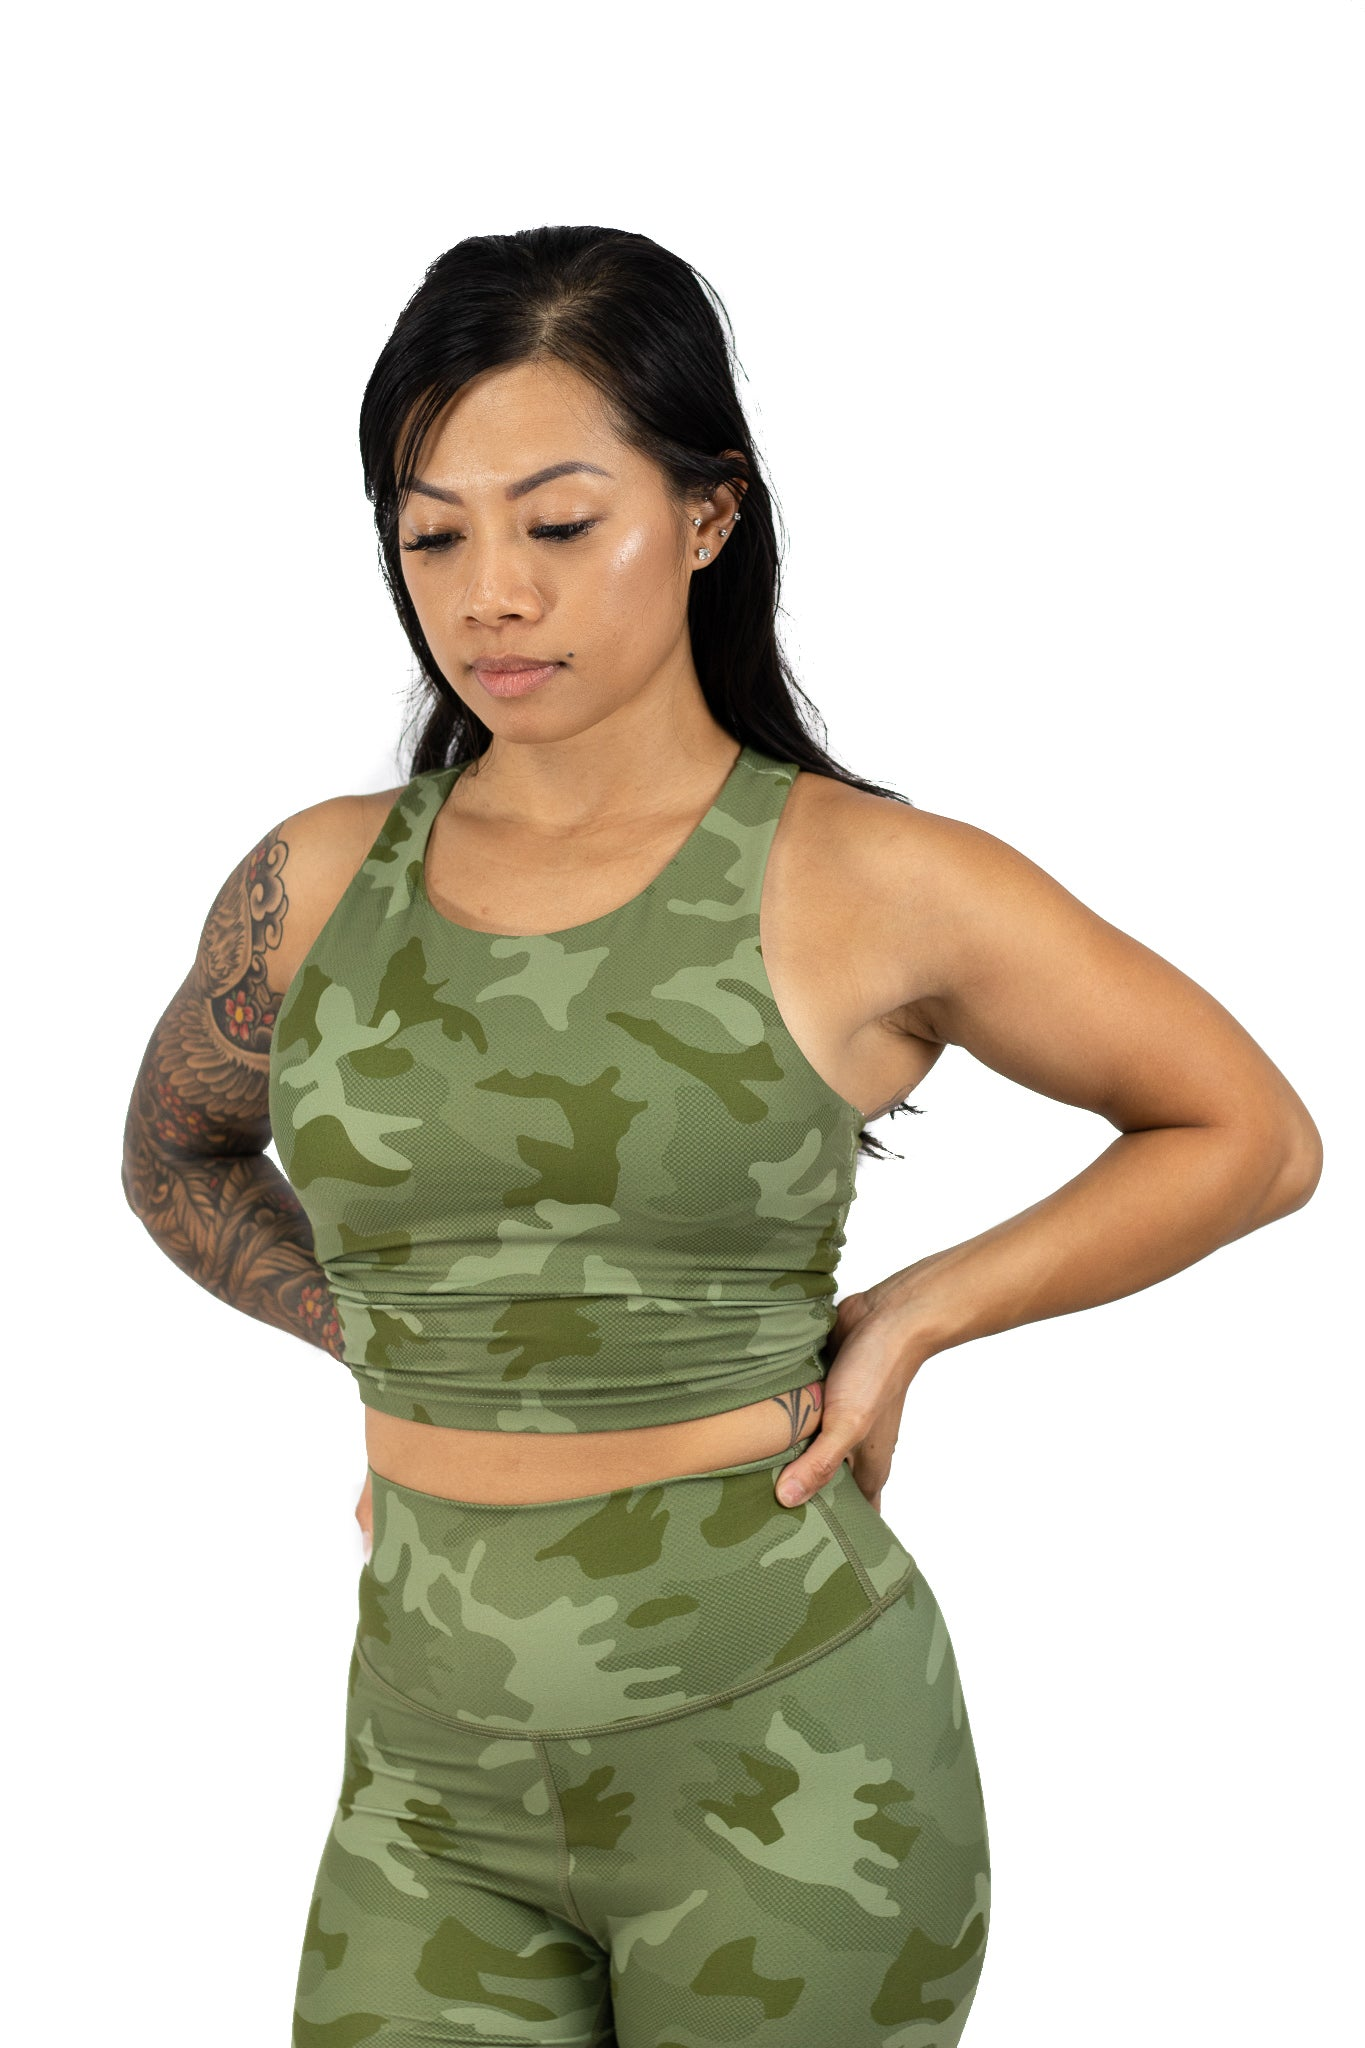 Green camo sports bra crop top